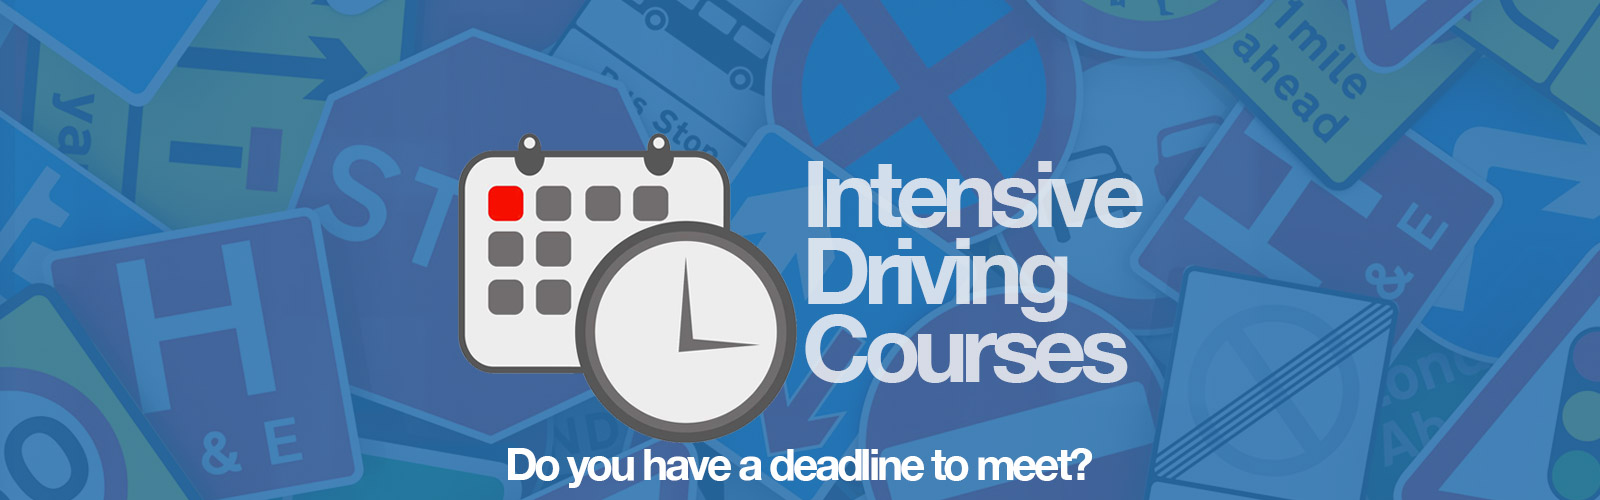 Intensive Driving Courses Top Image